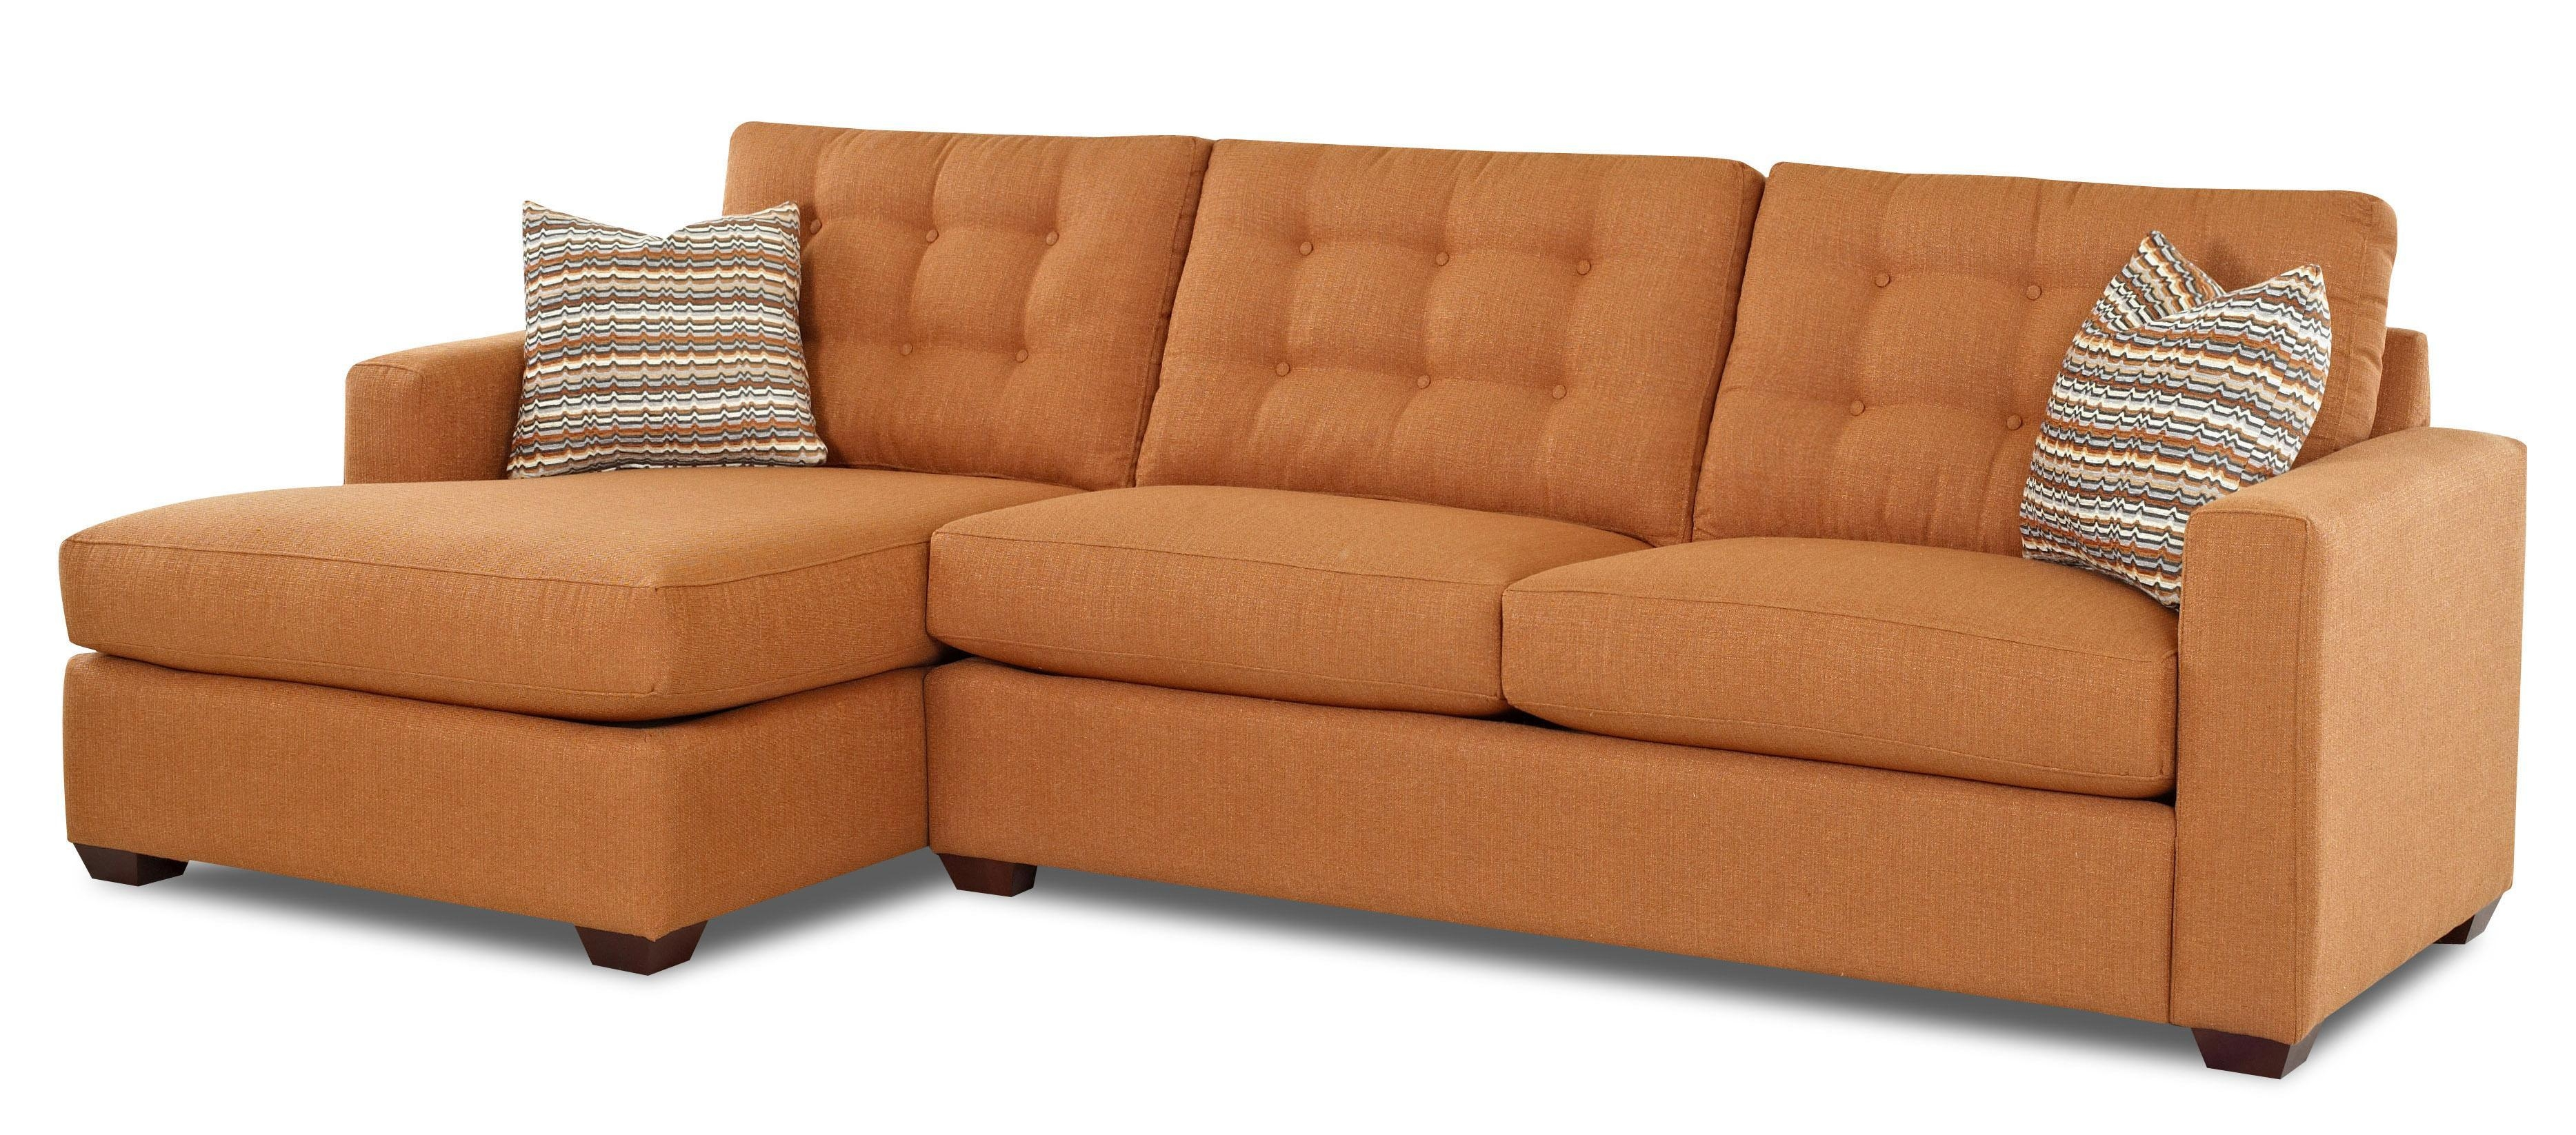 Sofa With Chaise Lounge 20 Best Ideas Chaise Sofas Sofa Ideas